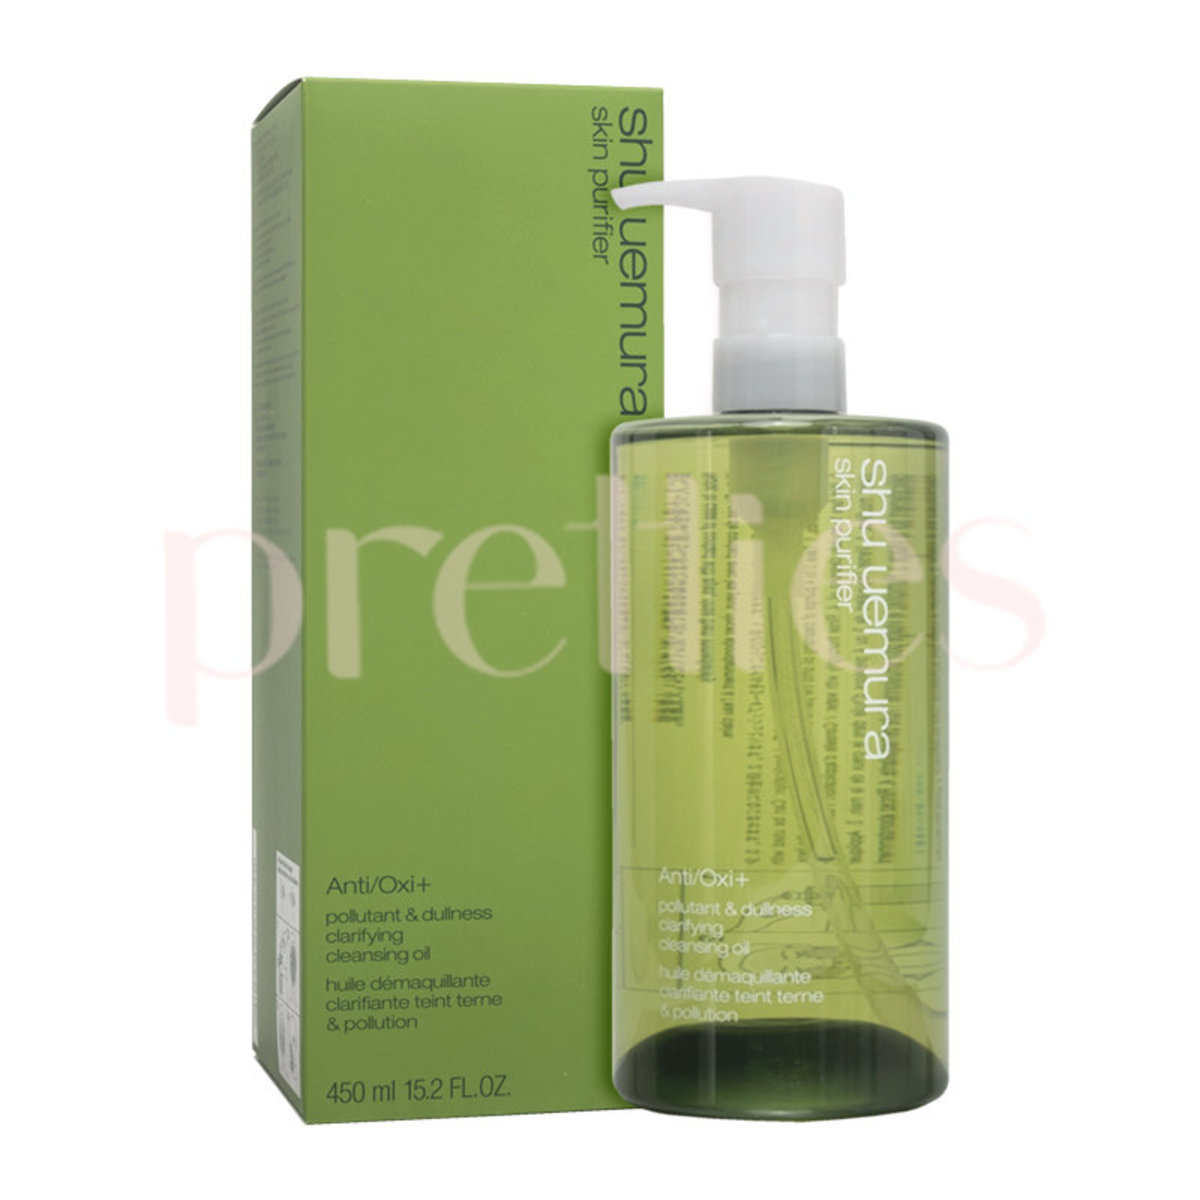 Anti-Oxidation & Anti-Dullness Cleansing Oil 450ml (Green) 4935421622899(Parallel Import)